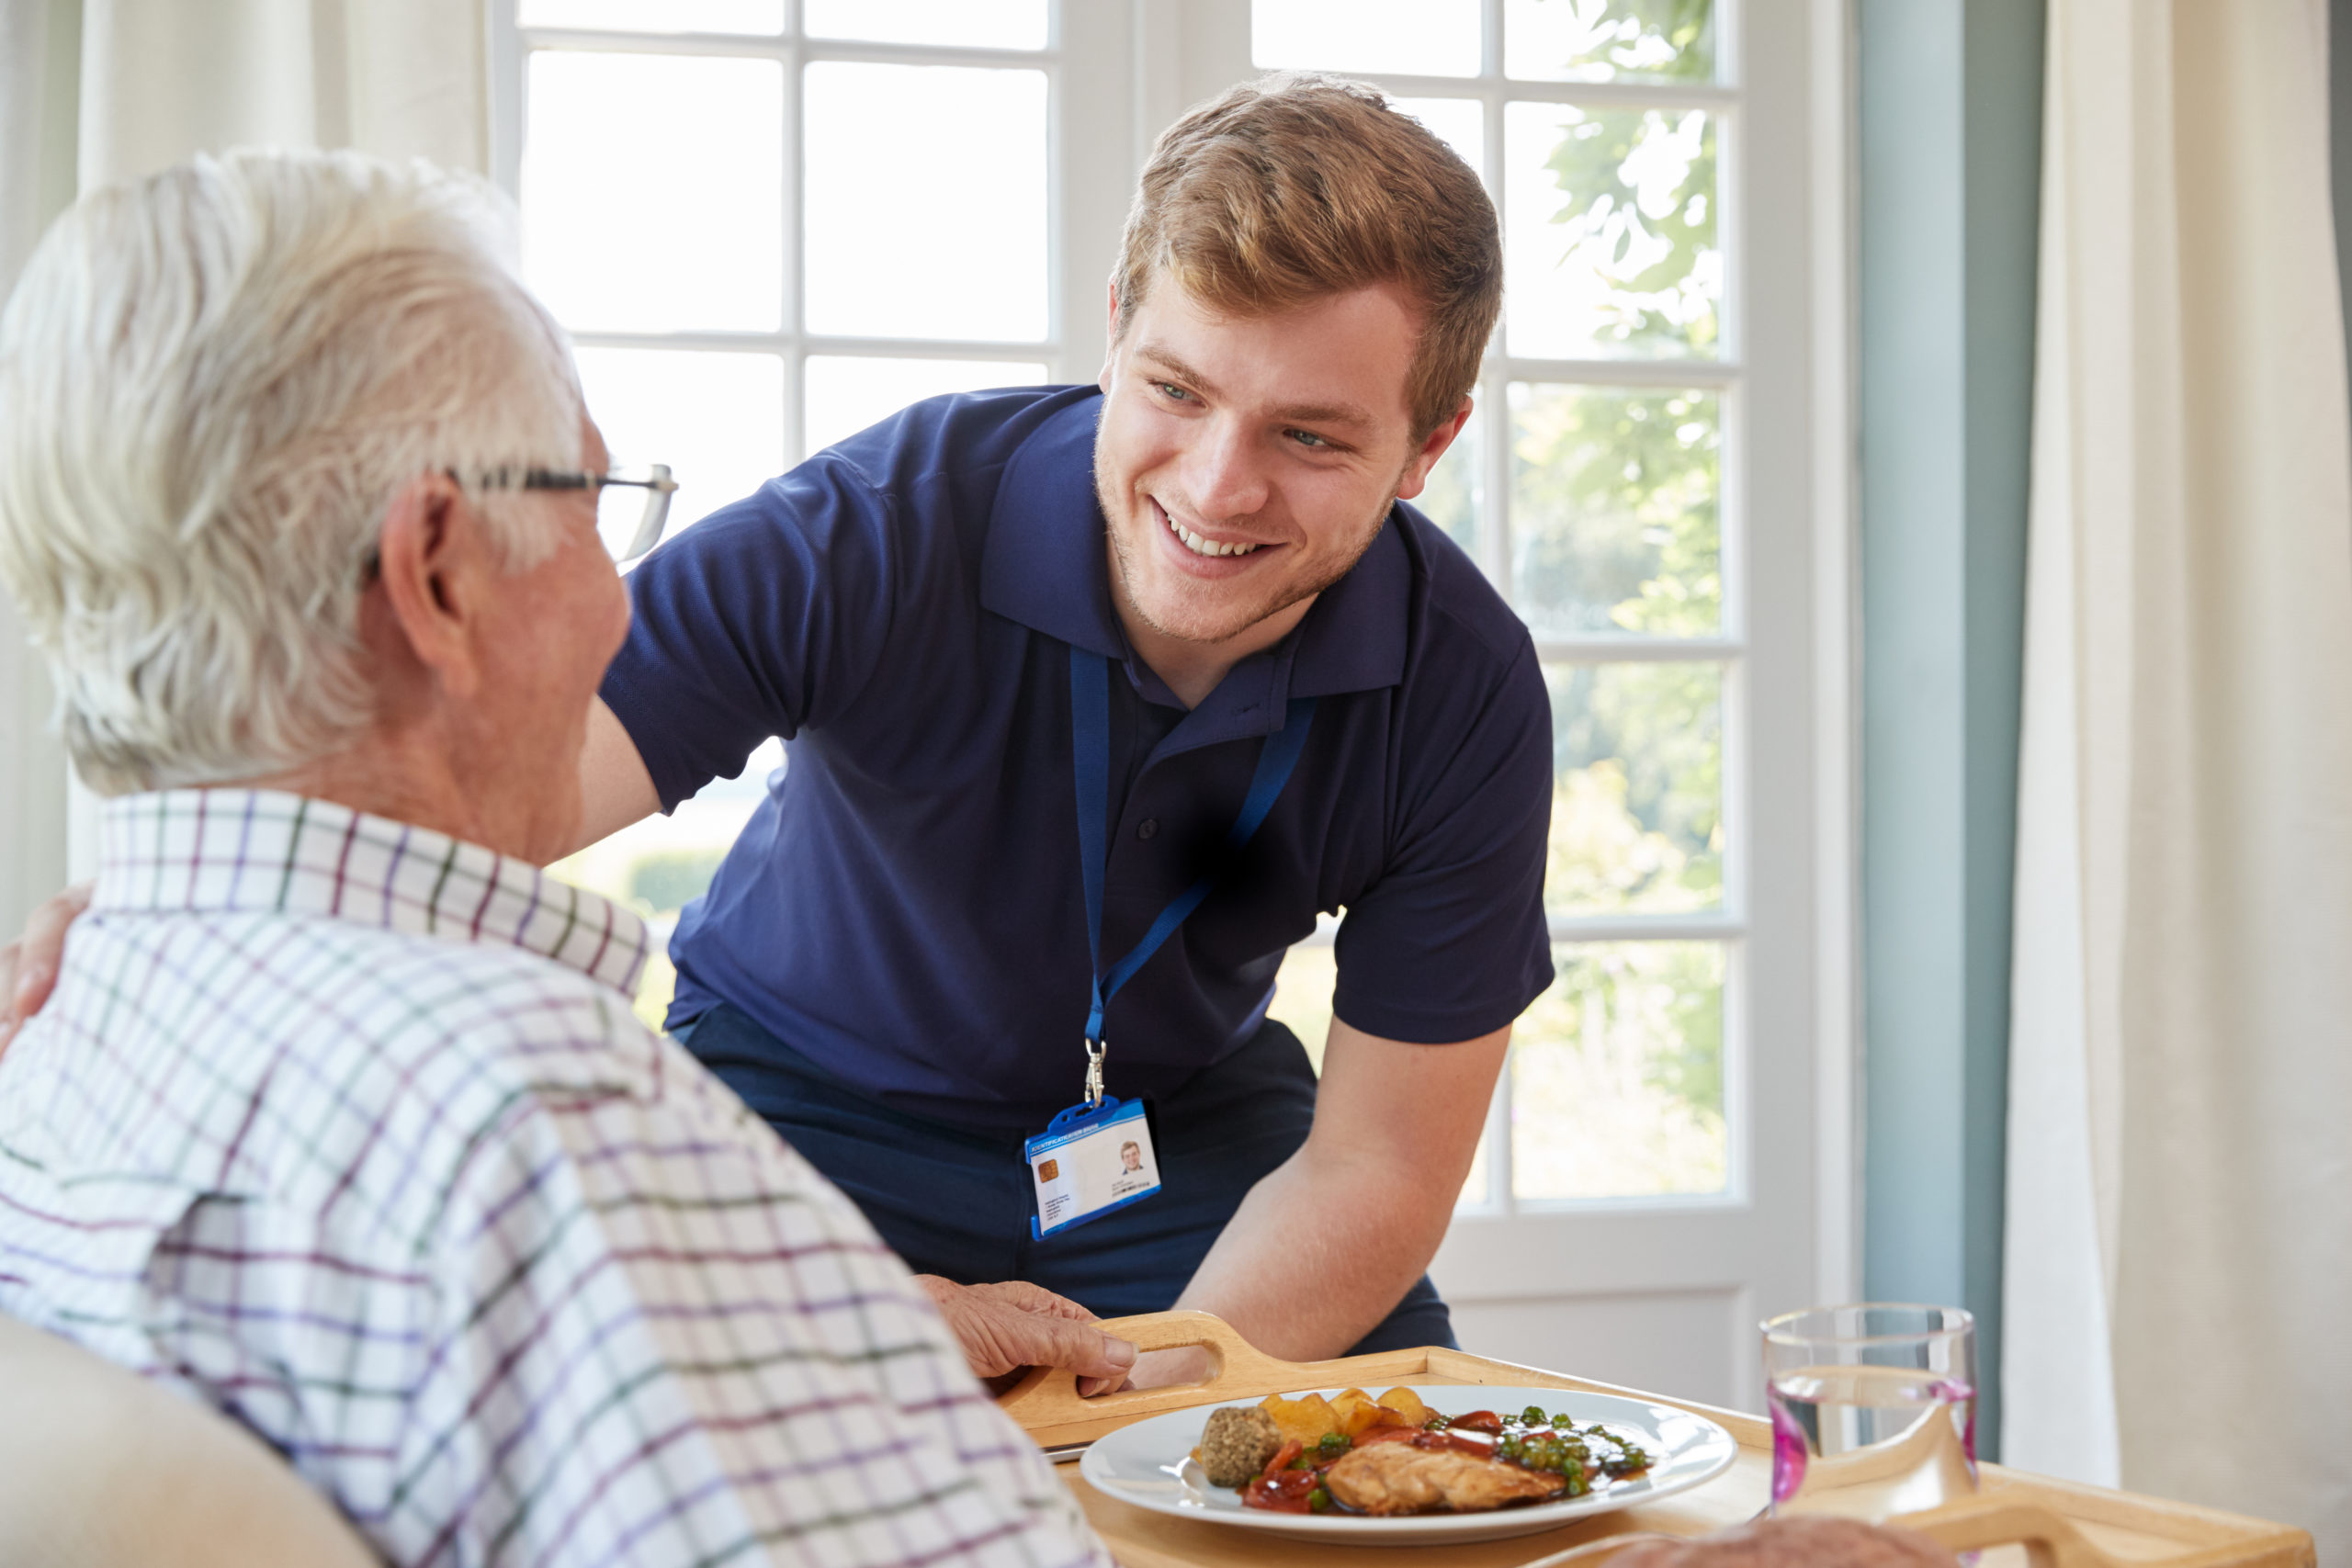 Apprenticeships and eLearning boost care sector recruitment